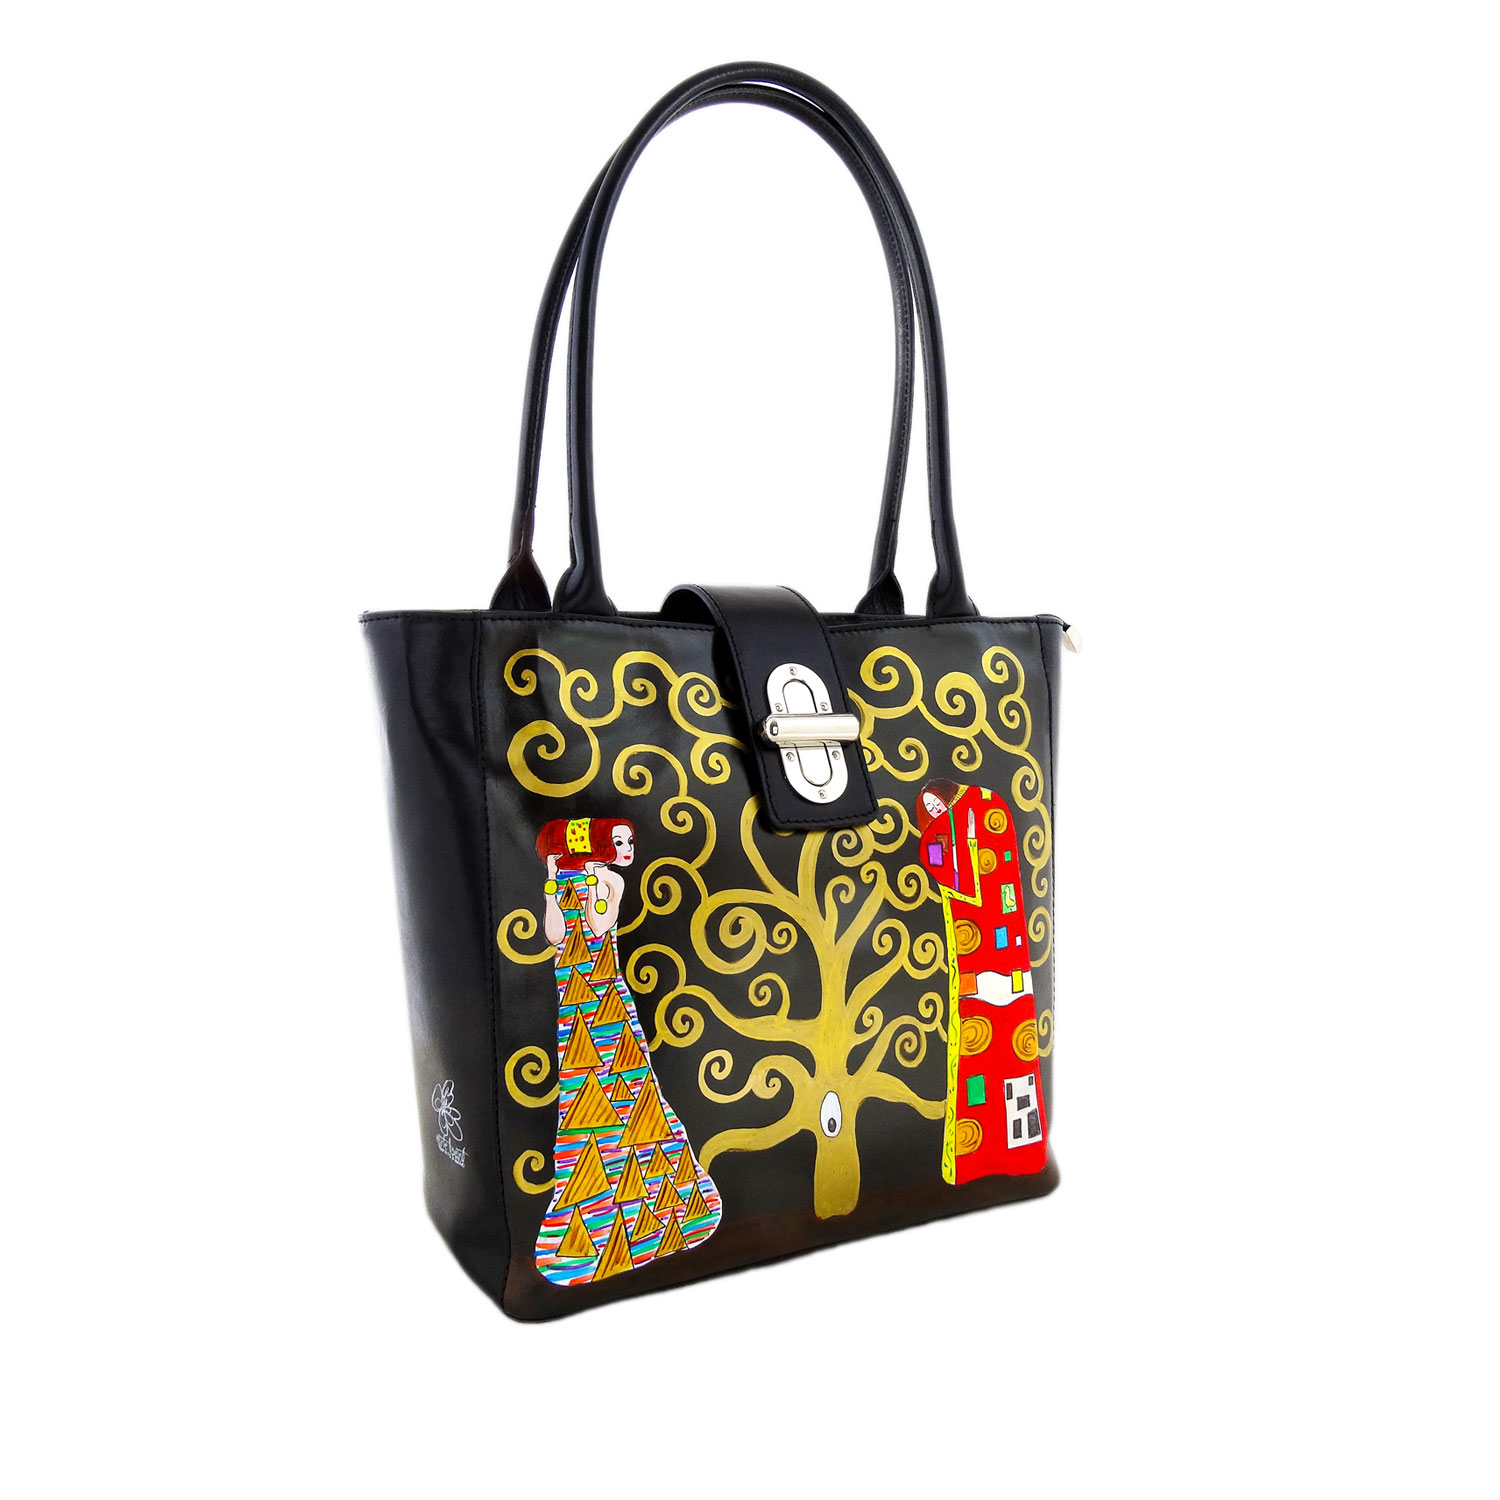 Handpainted bag - The Tree of Life by Klimt